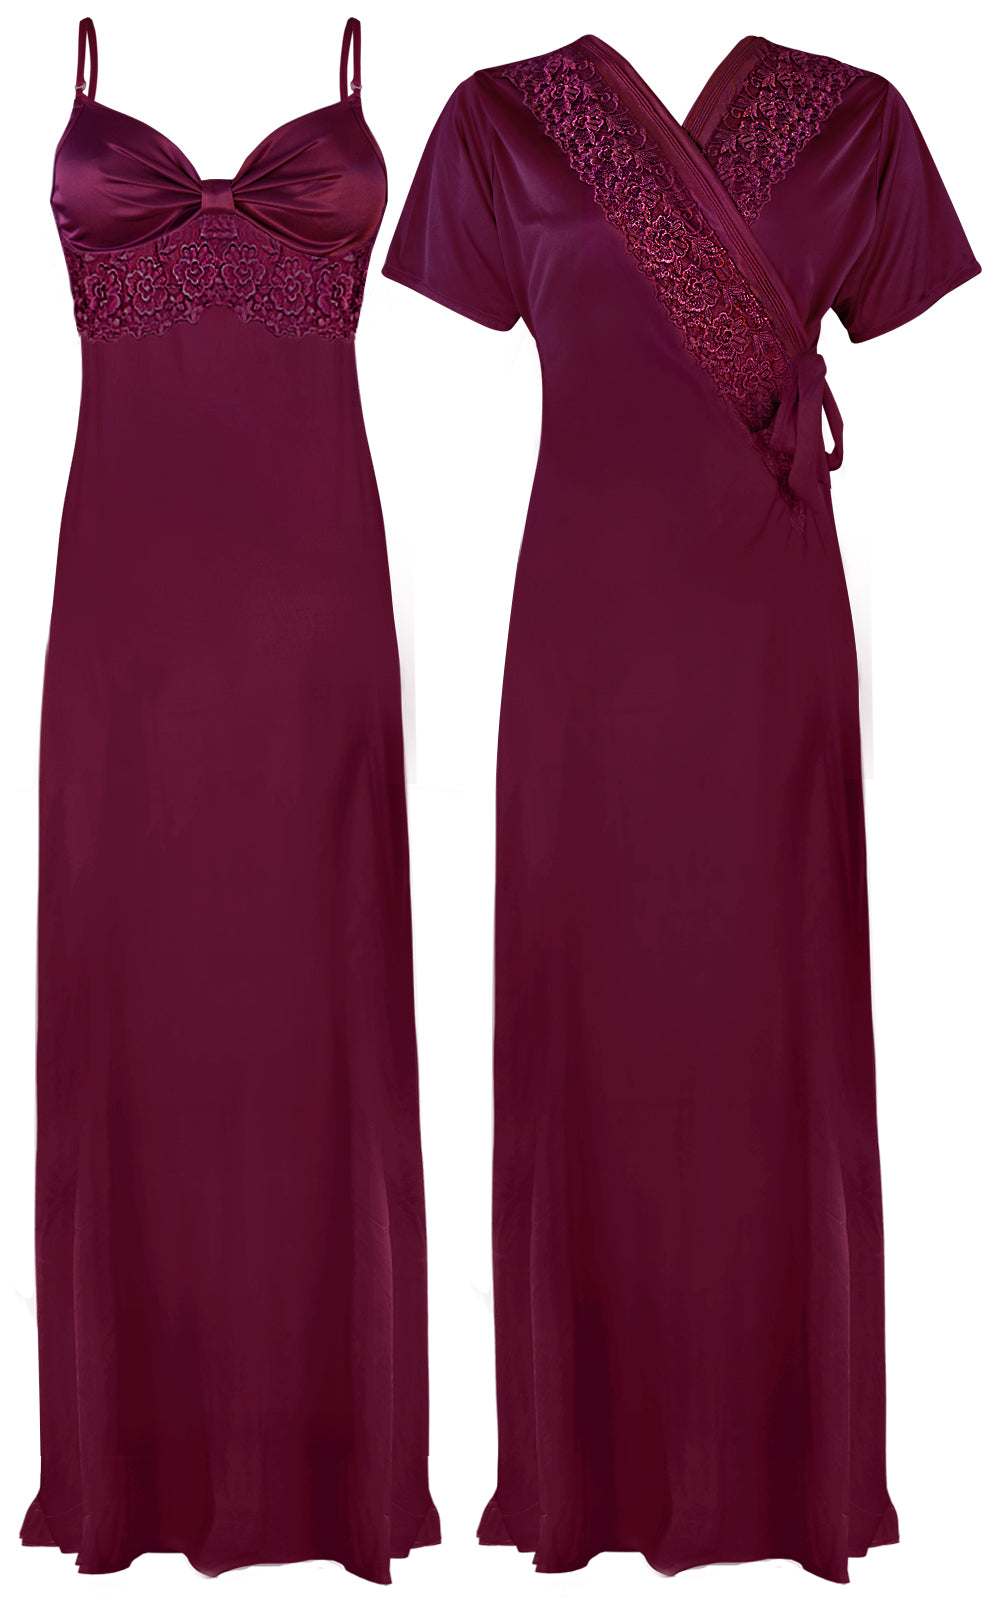 Colour: Dark Wine 2 Pcs Strappy Lace Long Nighty With Robe Size: One Size